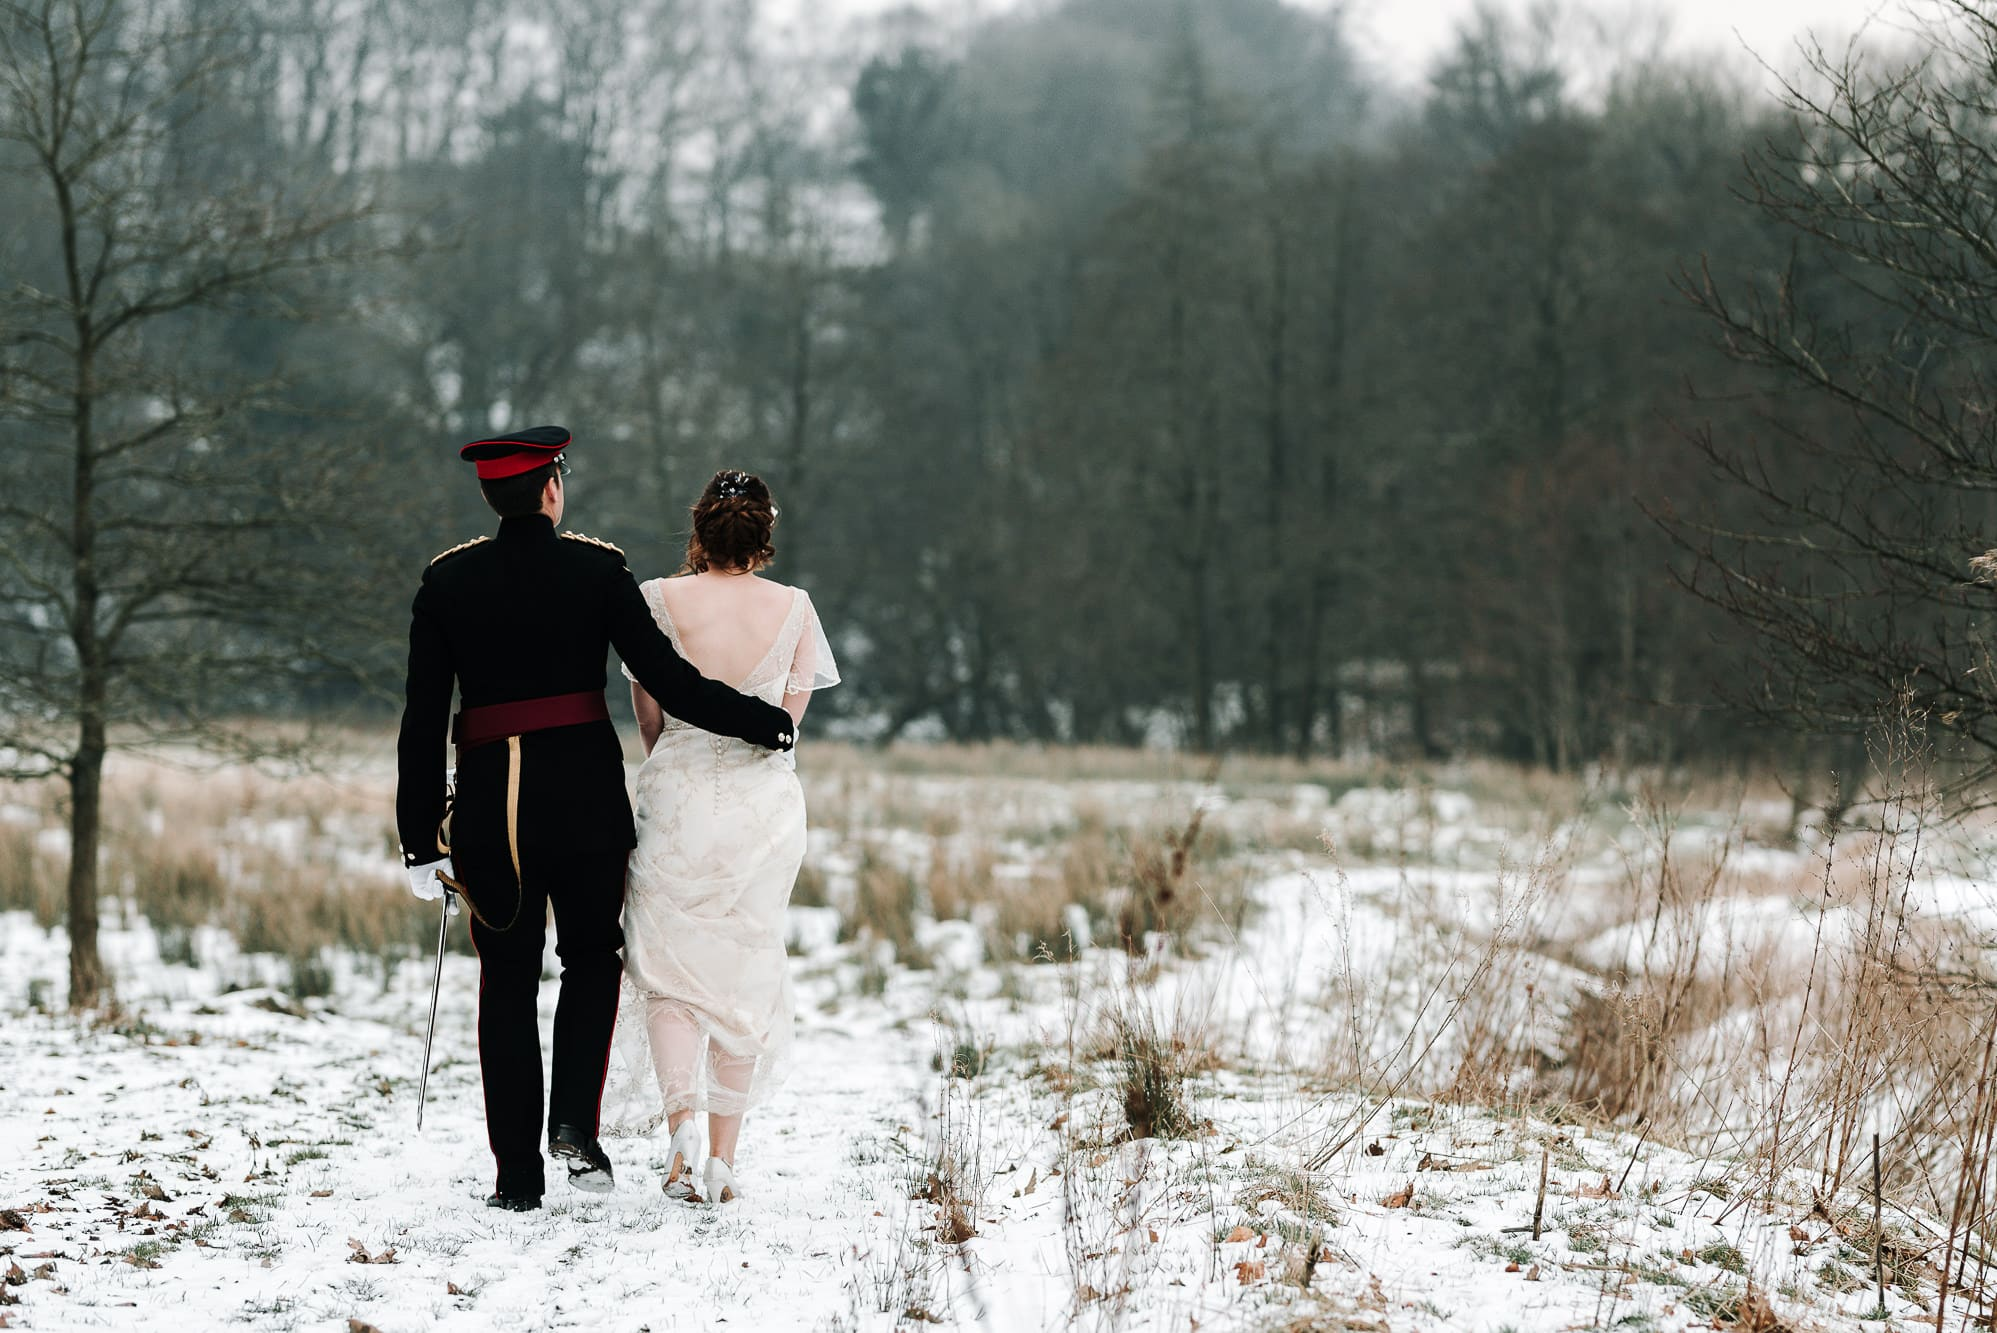 A photo from behind of the bride and groom walking in the snow